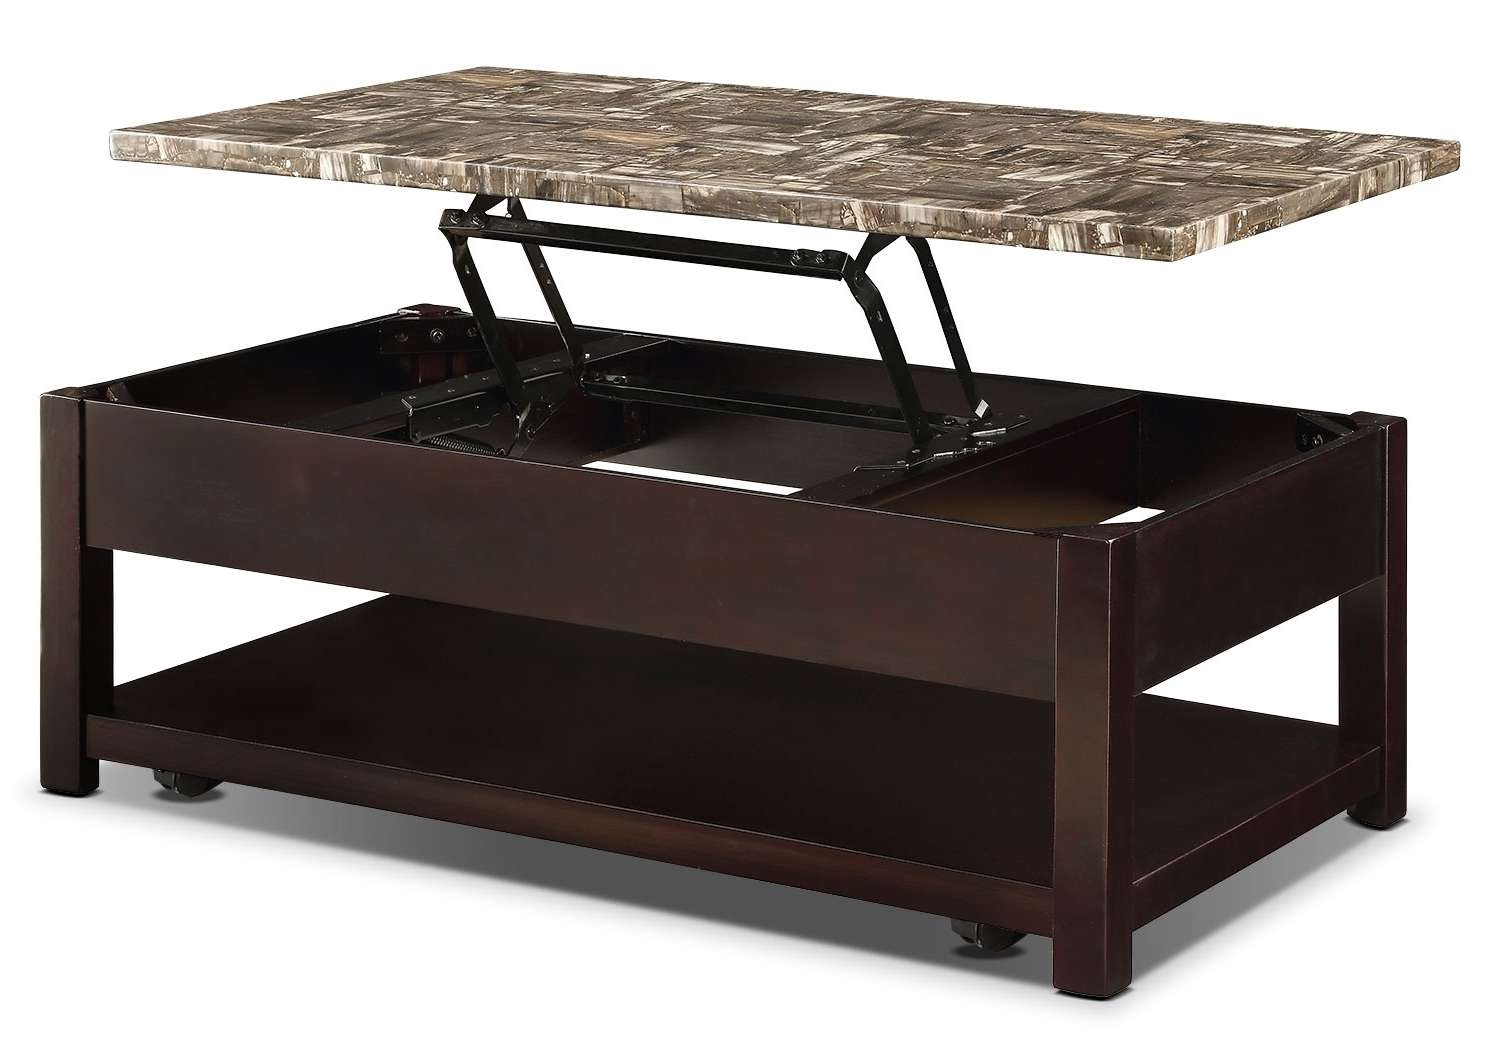 Photo Gallery Of Extra Large Square Coffee Tables Showing Of - Extra large cocktail table